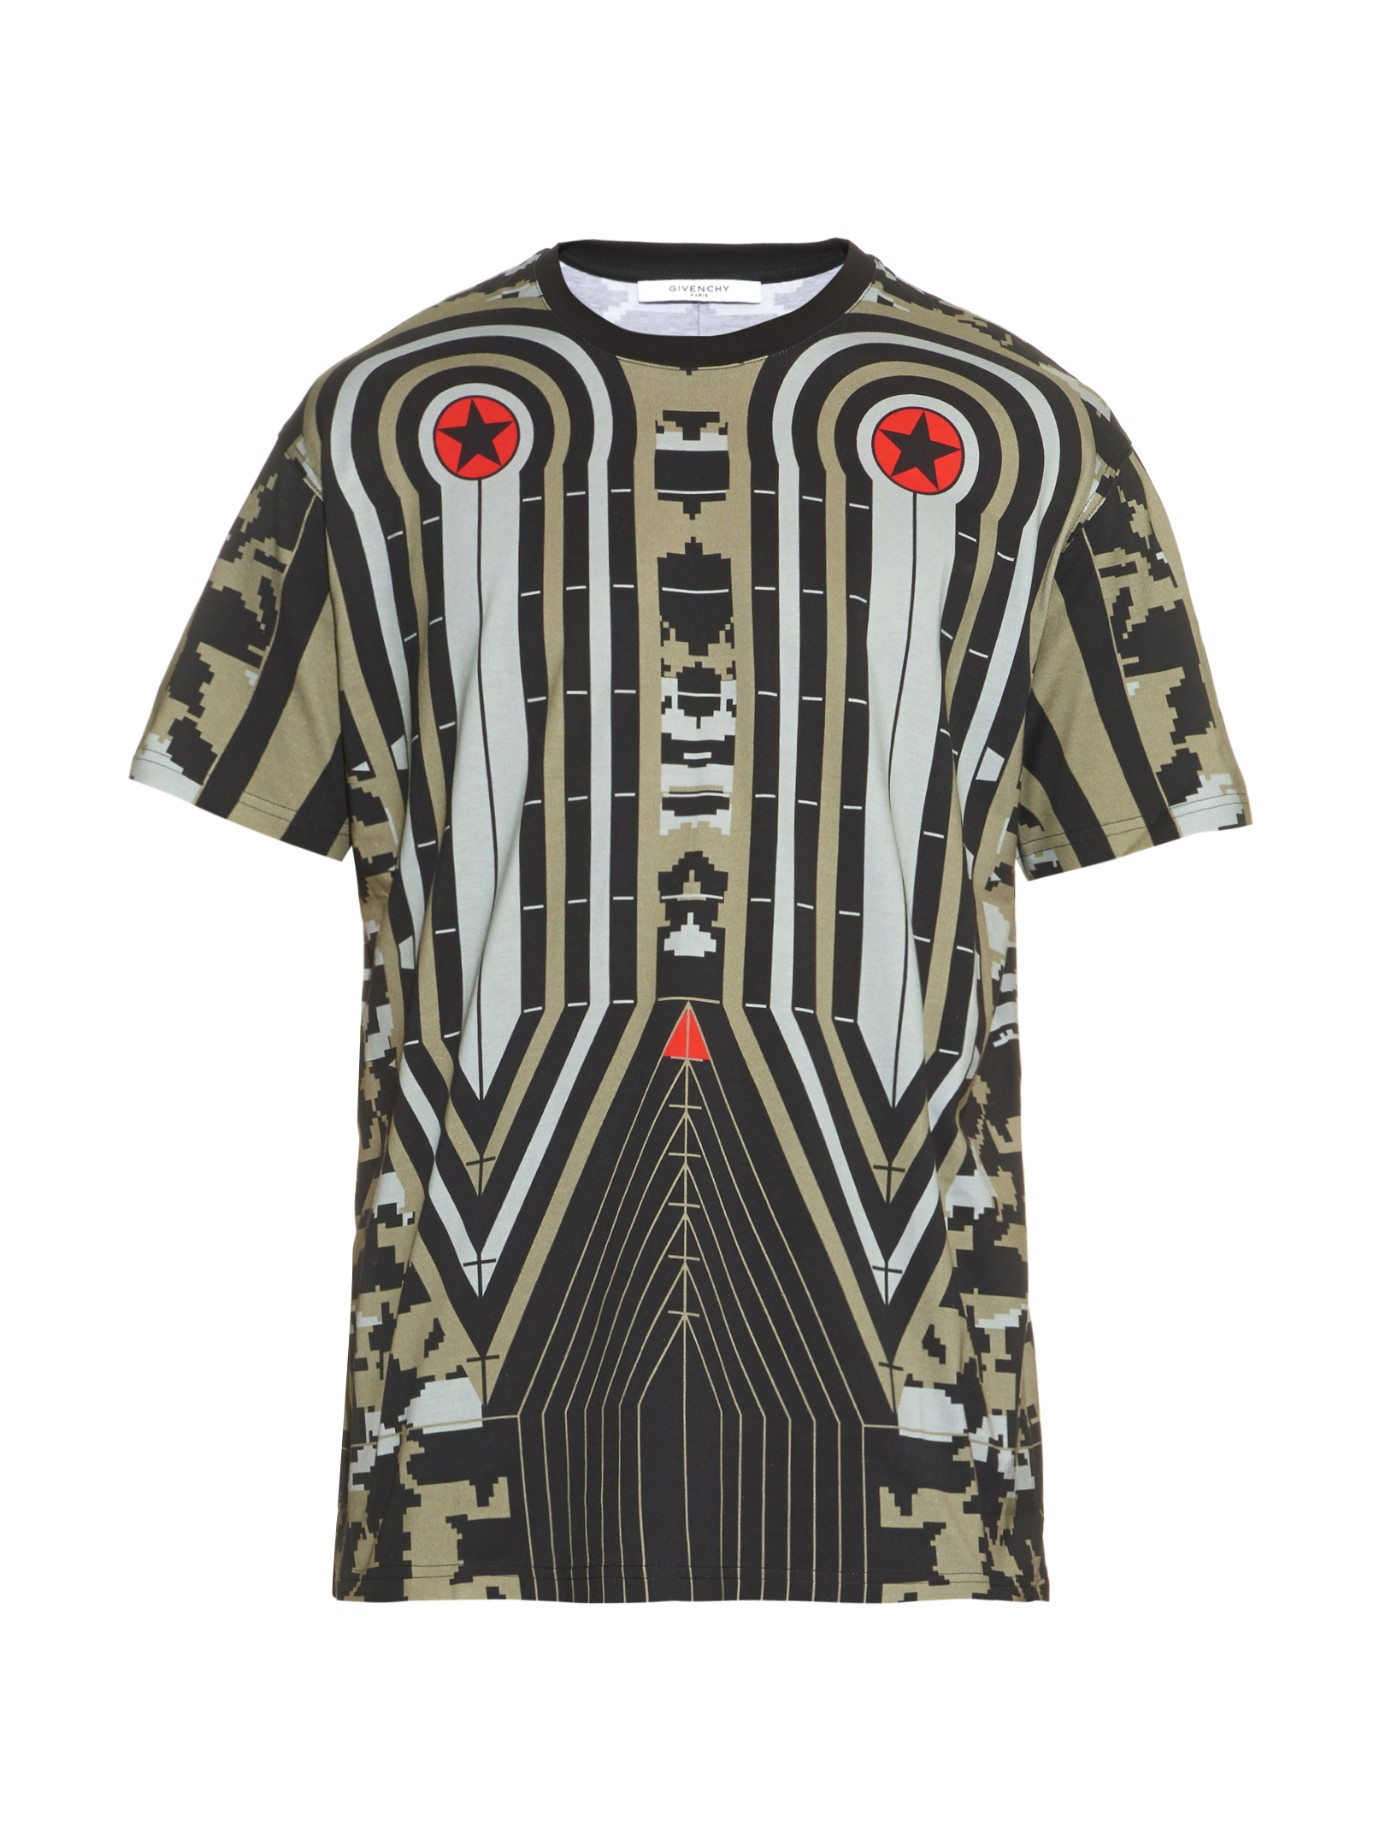 Lyst Givenchy Robot Print Cotton T Shirt In Black For Men